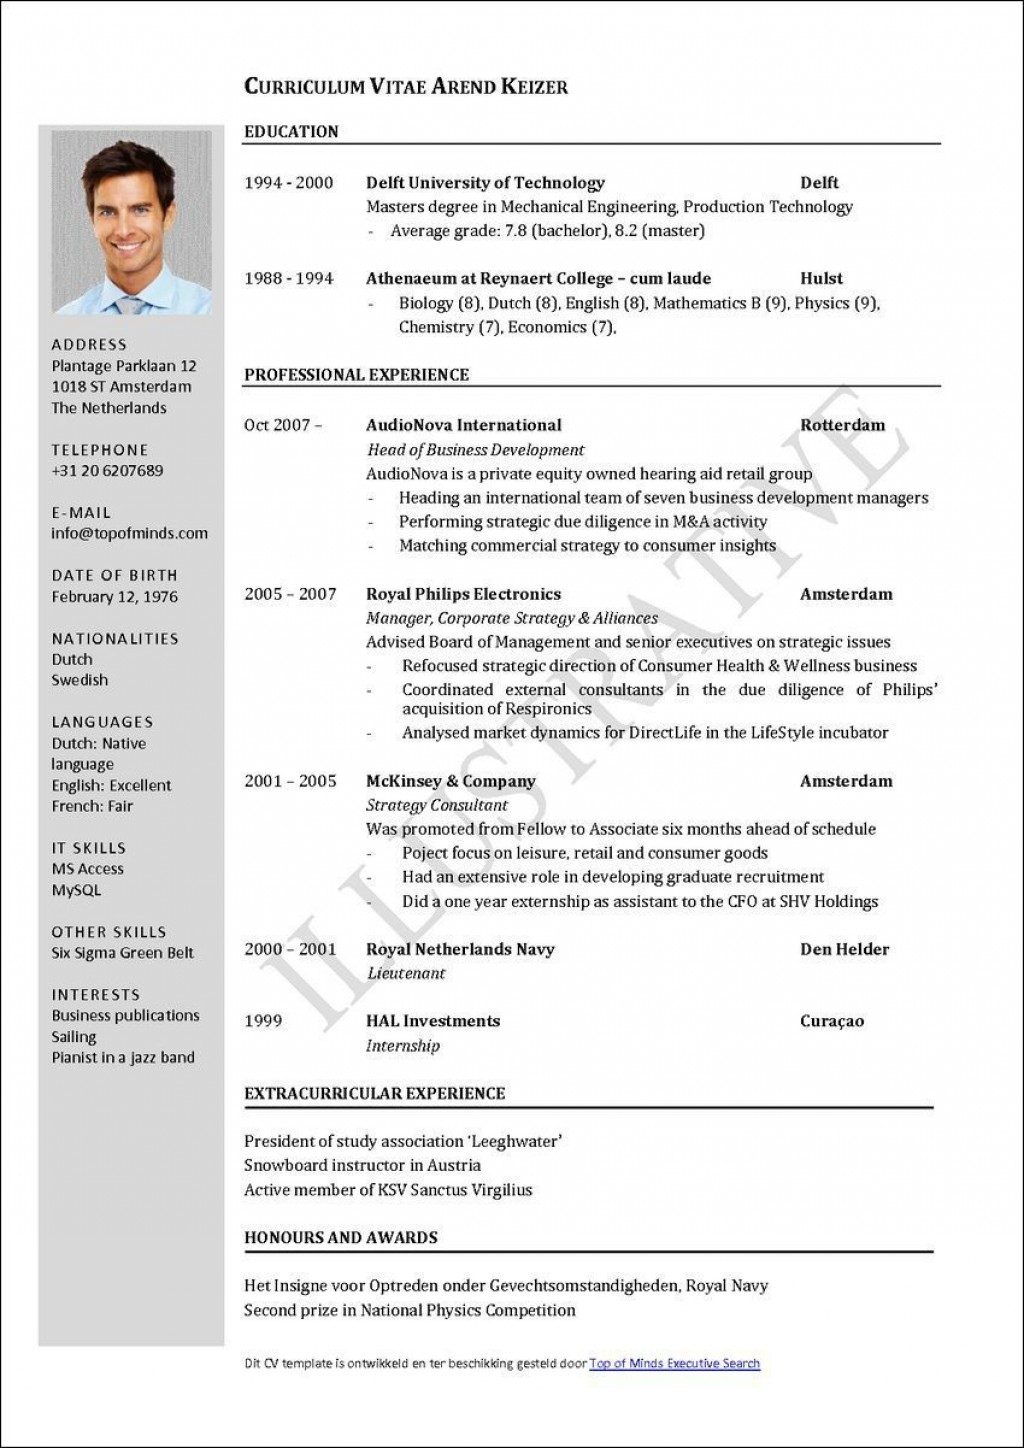 002 Unique Curriculum Vitae Template Free Photo  Download South Africa Format Pdf SampleLarge